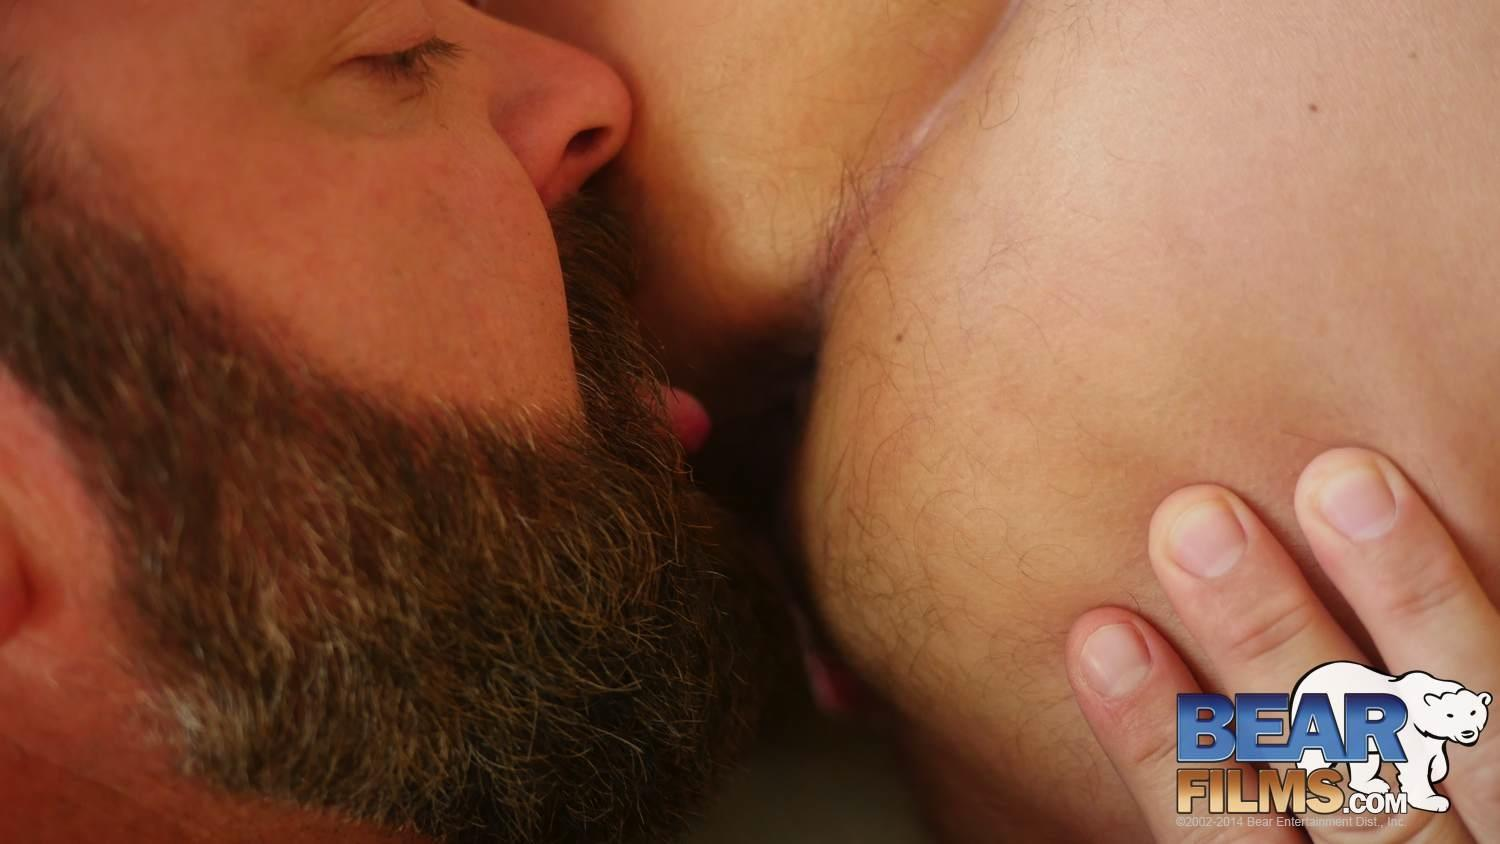 Bear-Films-Kroy-Bama-and-Cooper-Hill-Hairy-Chubby-Bears-Fucking-Bearback-Amateur-Gay-Porn-22 Hairy Chubby Bears Kroy Bama and Cooper Hill Raw Fucking